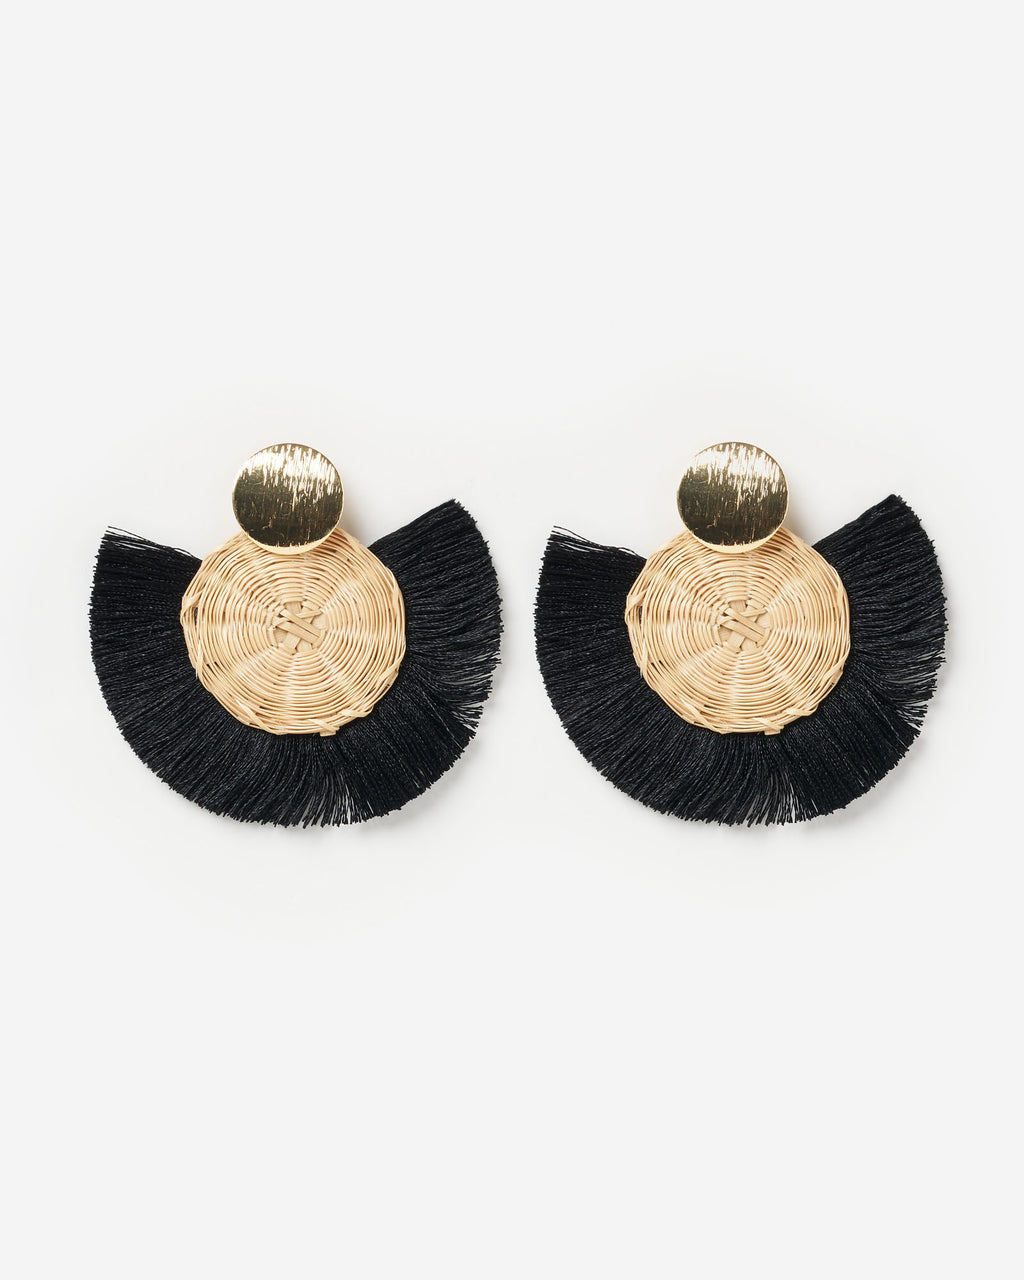 Izoa Bohemian Earrings Black